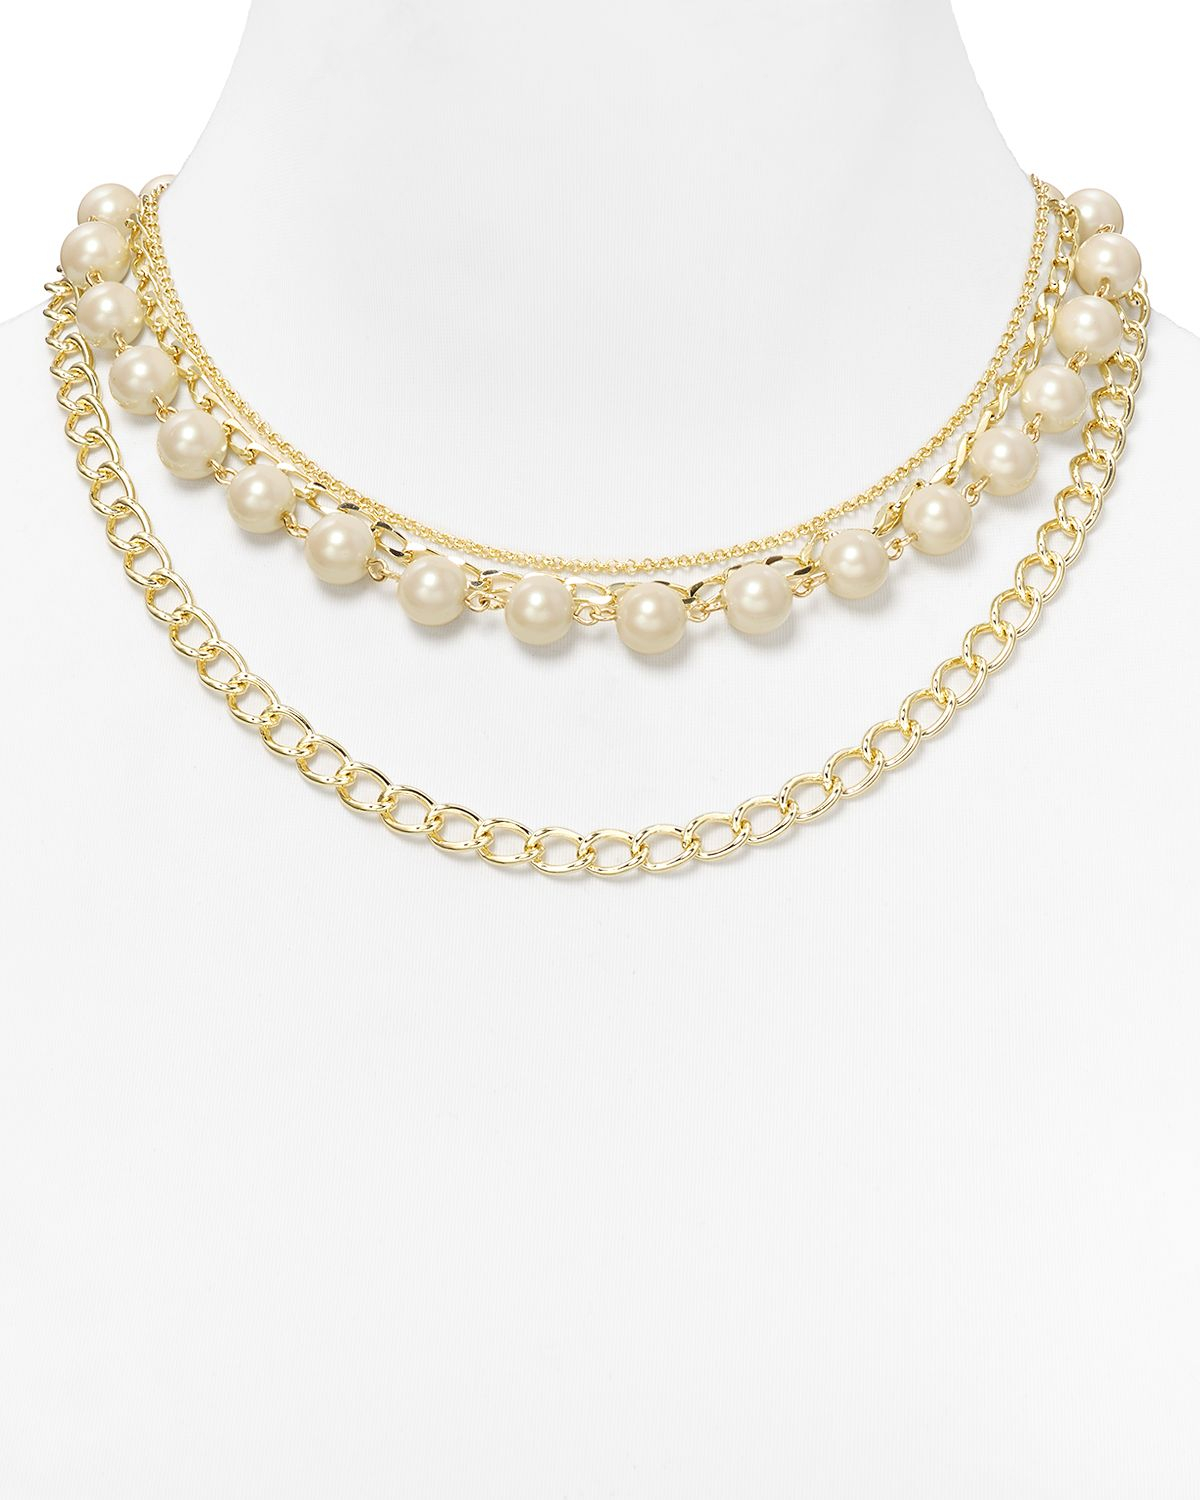 Multi Row Pearl Necklace: Carolee Picnic Pearls Multi Row Necklace 18 In White